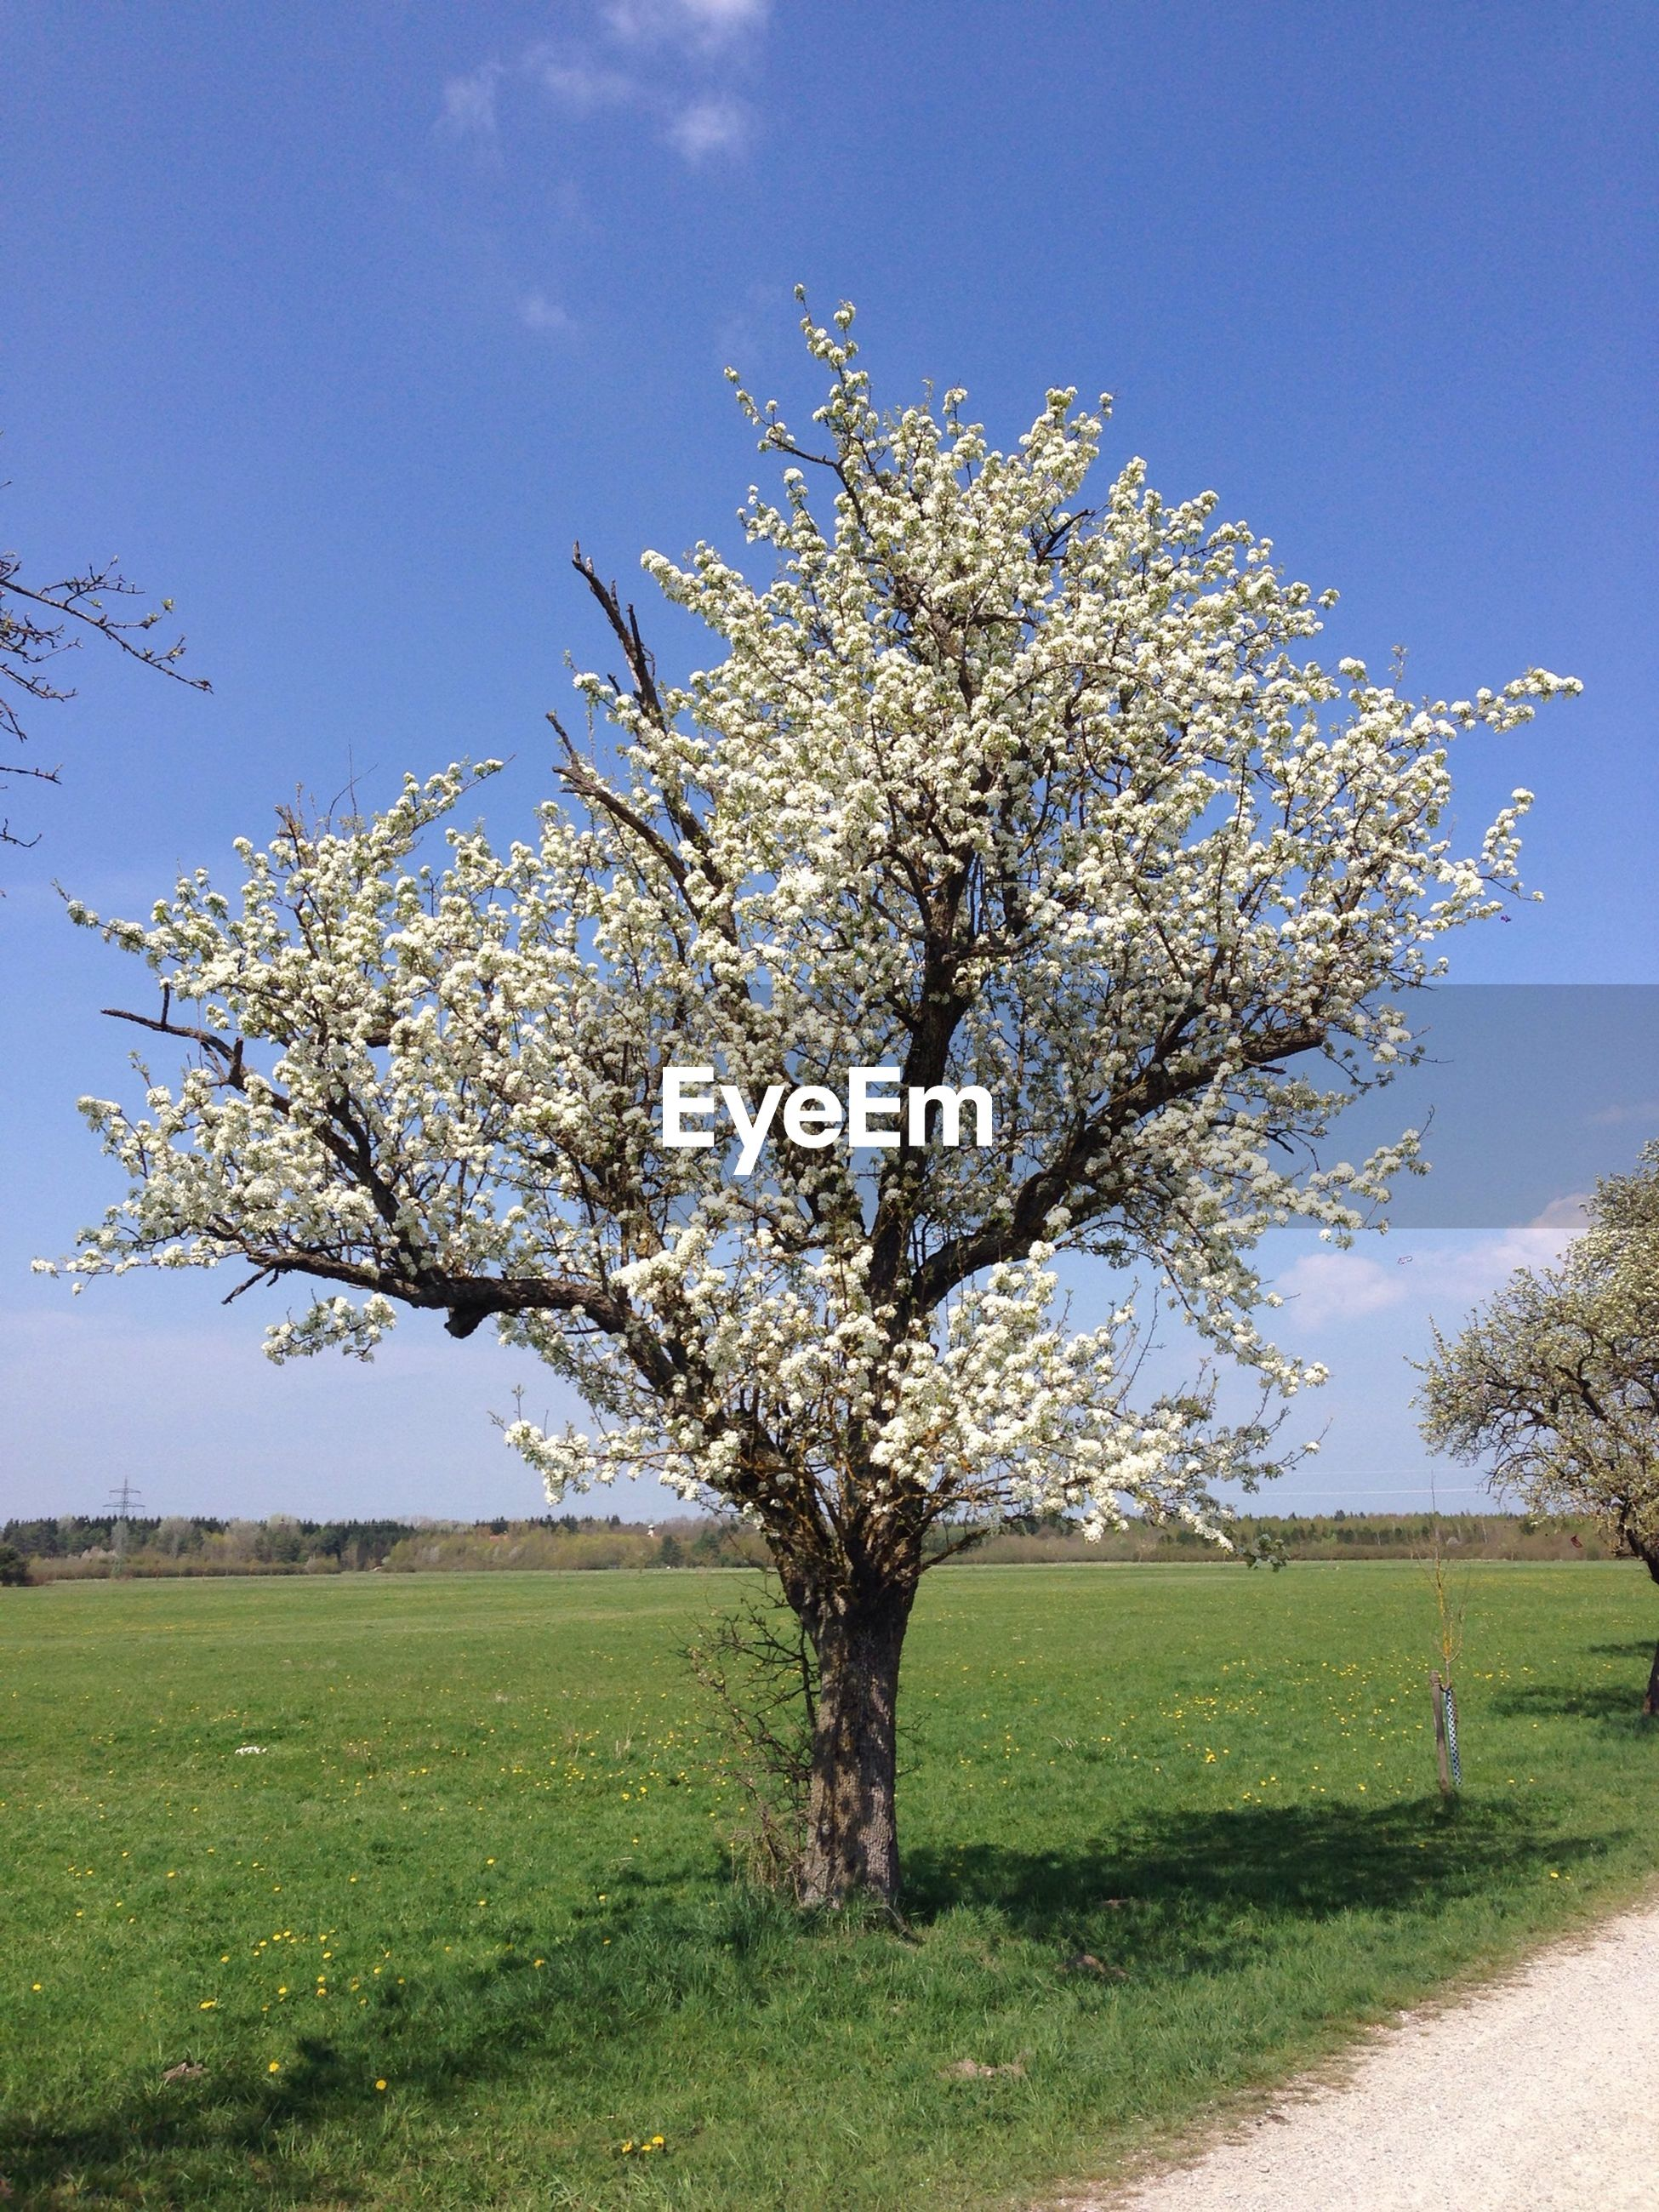 Tree with white blossom in field